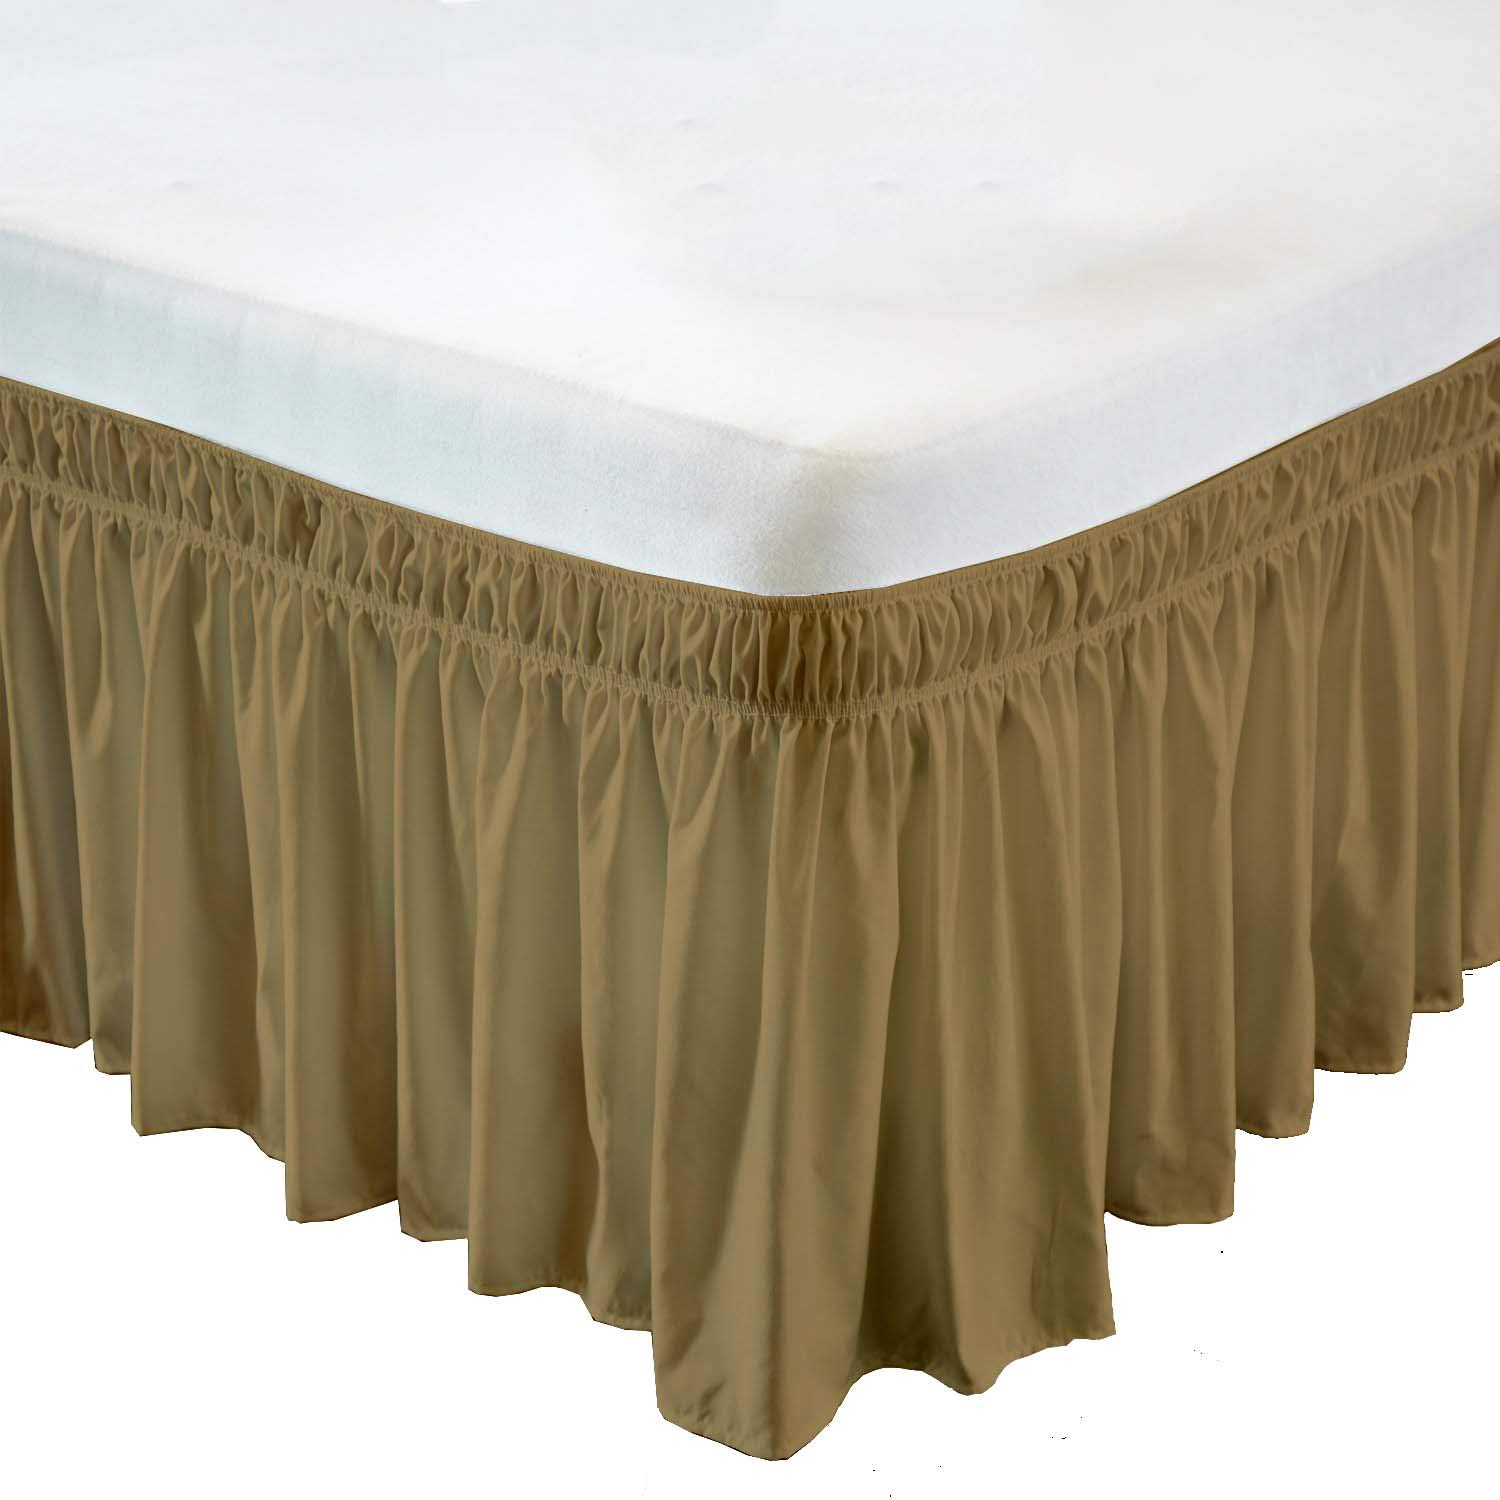 Wrap Around Bed Skirt- 12 Inch Drop Length Style Easy Fit Elastic Bed Ruffles Bed-Skirt Wrinkle Free Bed Skirt - Taupe, Queen in All Bed Sizes and Colors